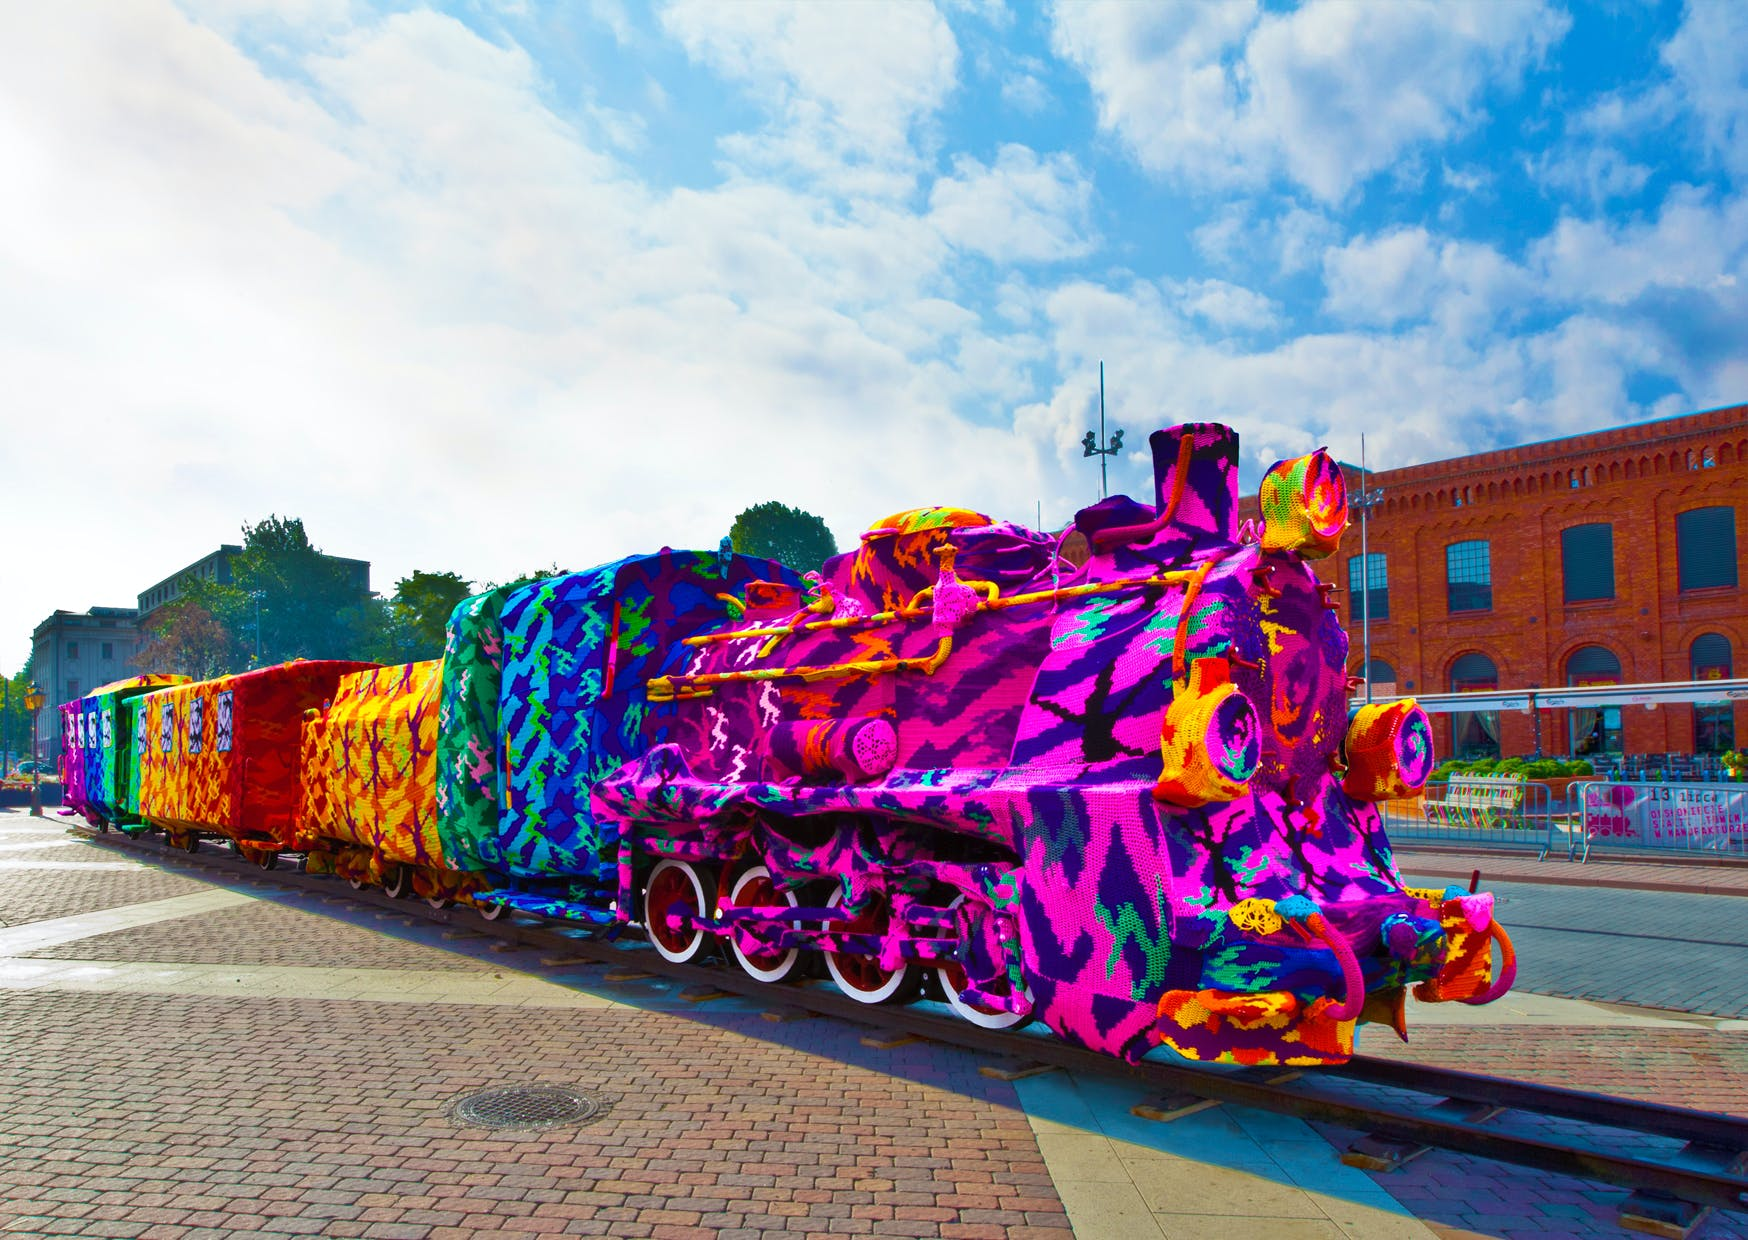 <p>Cindy Michael/Harps and Thistles wants commemorate Sojourner Truth&rsquo;s Akron speech &ldquo;Ain&rsquo;t I A Woman?&rdquo; in a large-scale, public crochet installation as part of a national project by Polish-American artist Olek. Photo Credit: Olek.&nbsp;</p><p><br></p>